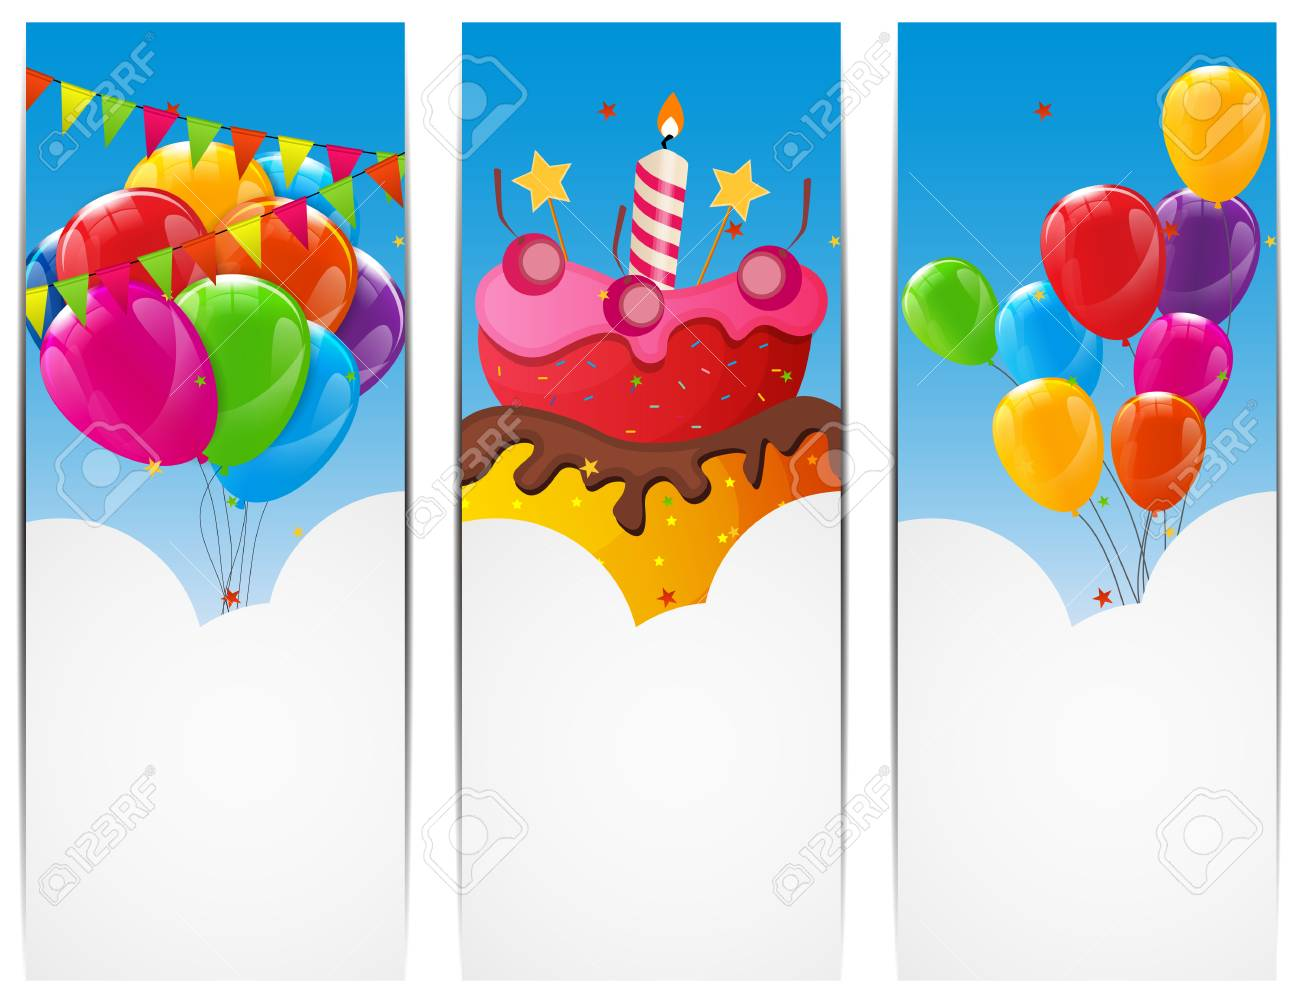 Color Glossy Happy Birthday Balloons And Cake Banner Background Vector Illustration EPS10 Stock